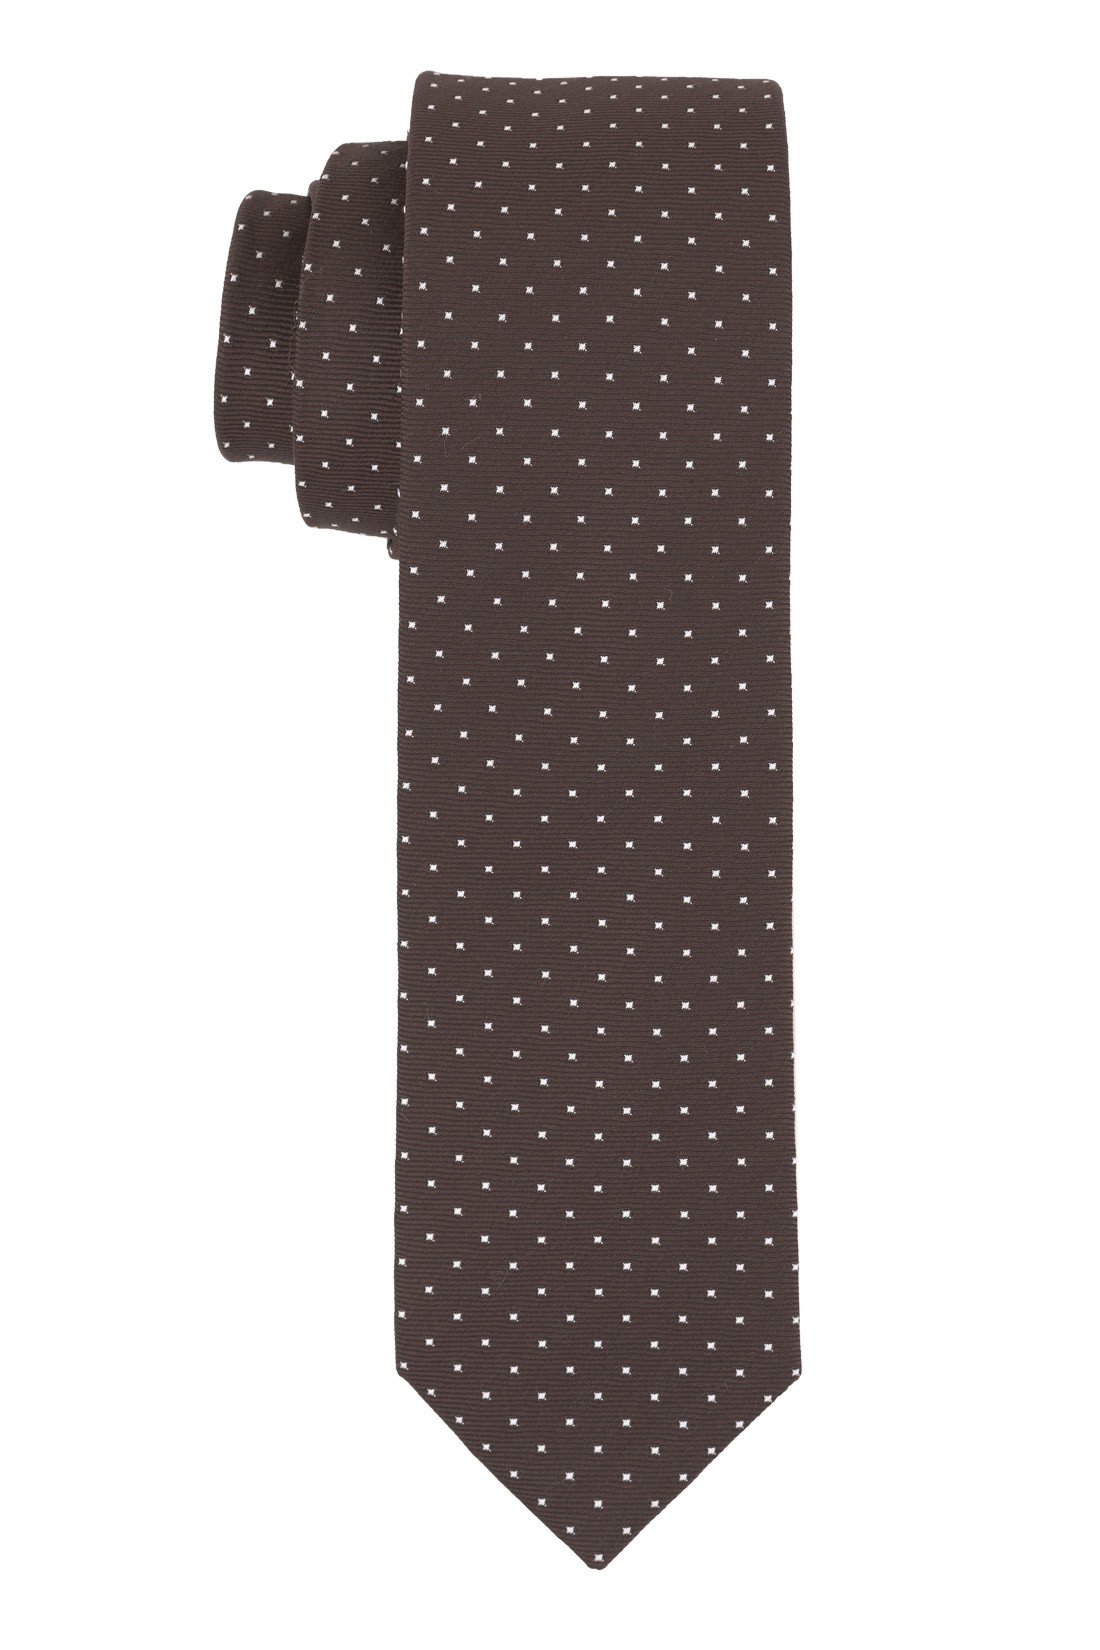 Free Fall Polka Brown 100% Silk Necktie